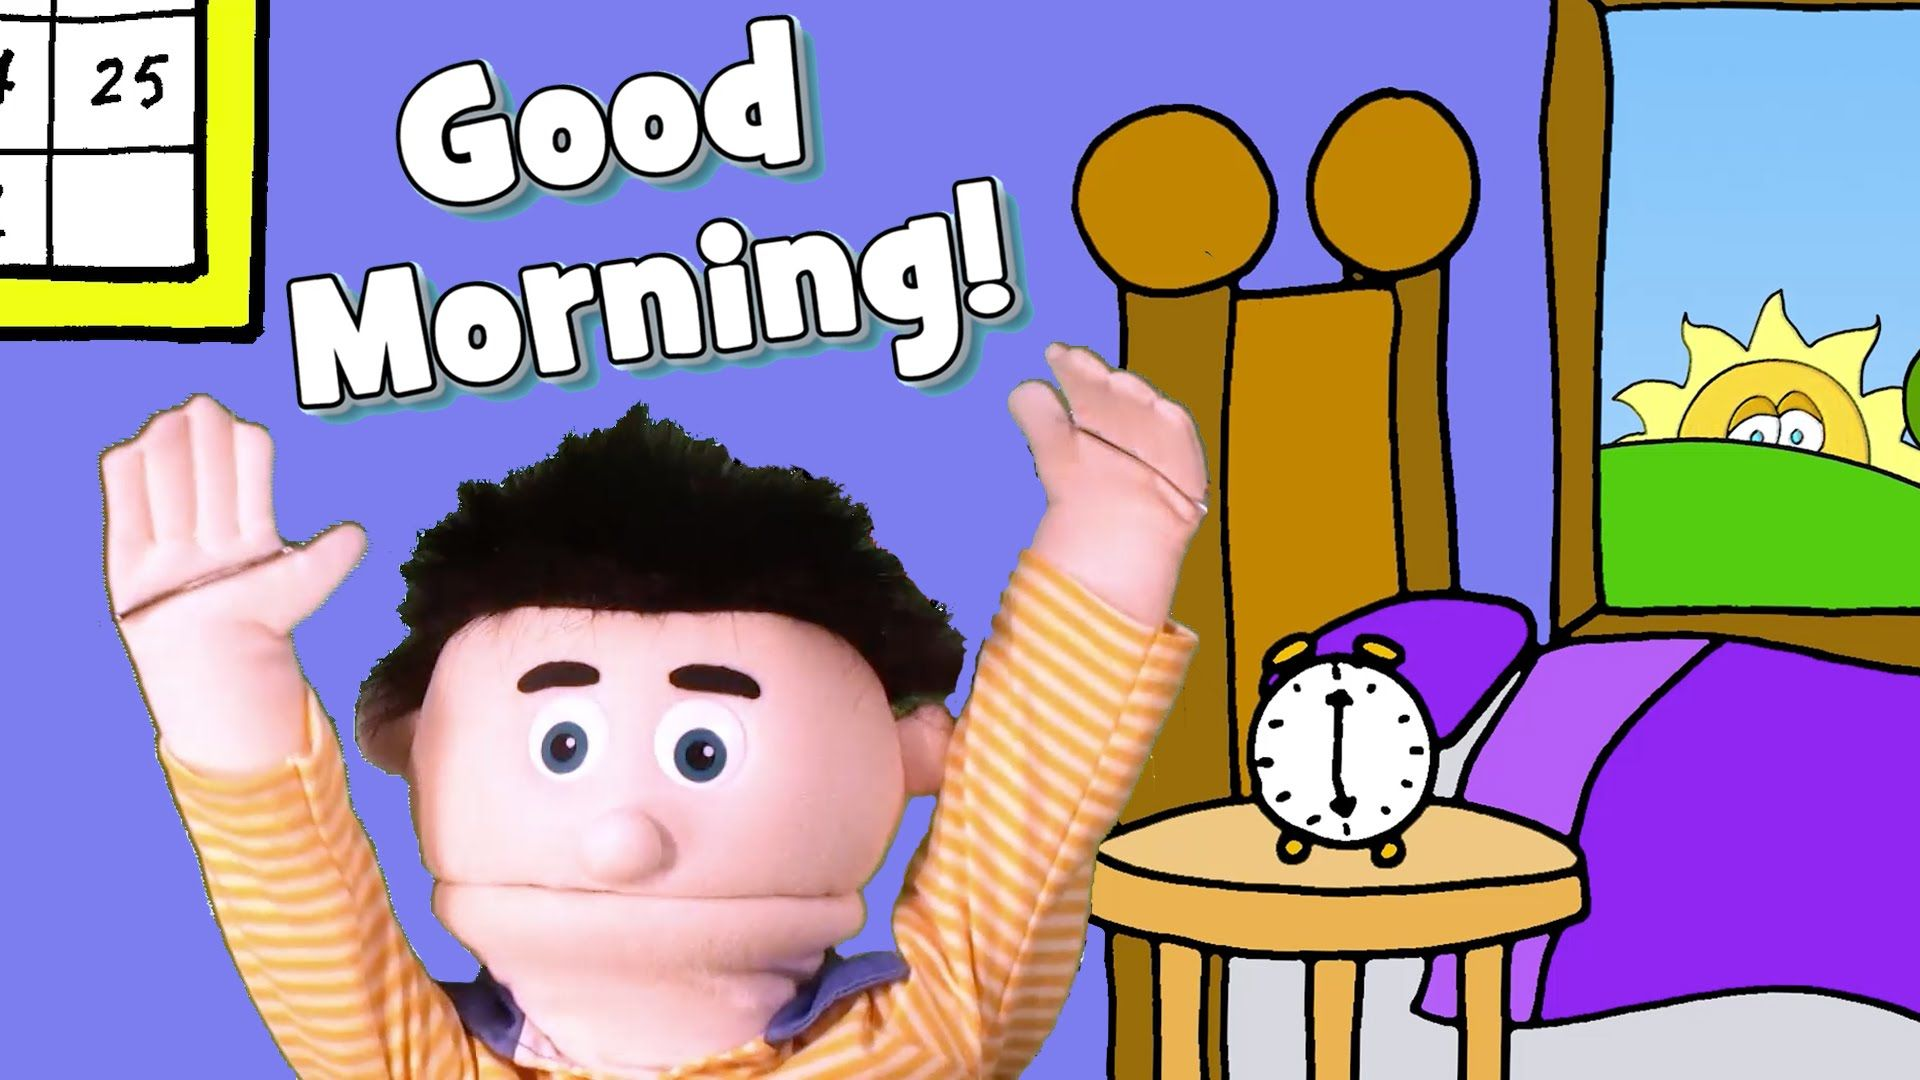 A fun and energetic good morning song with actions to start.